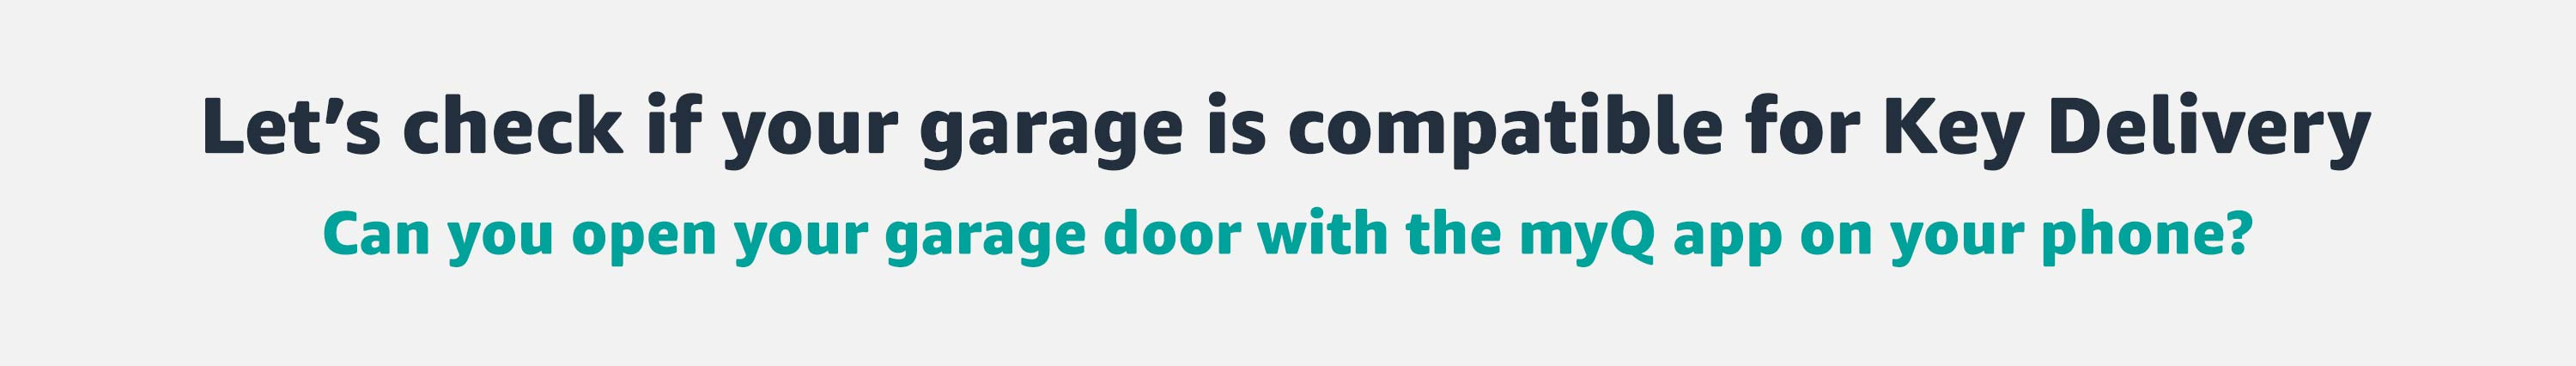 Check if your garage is compatible for Key delivery. Can you open your garage door with the myQ app on your phone?